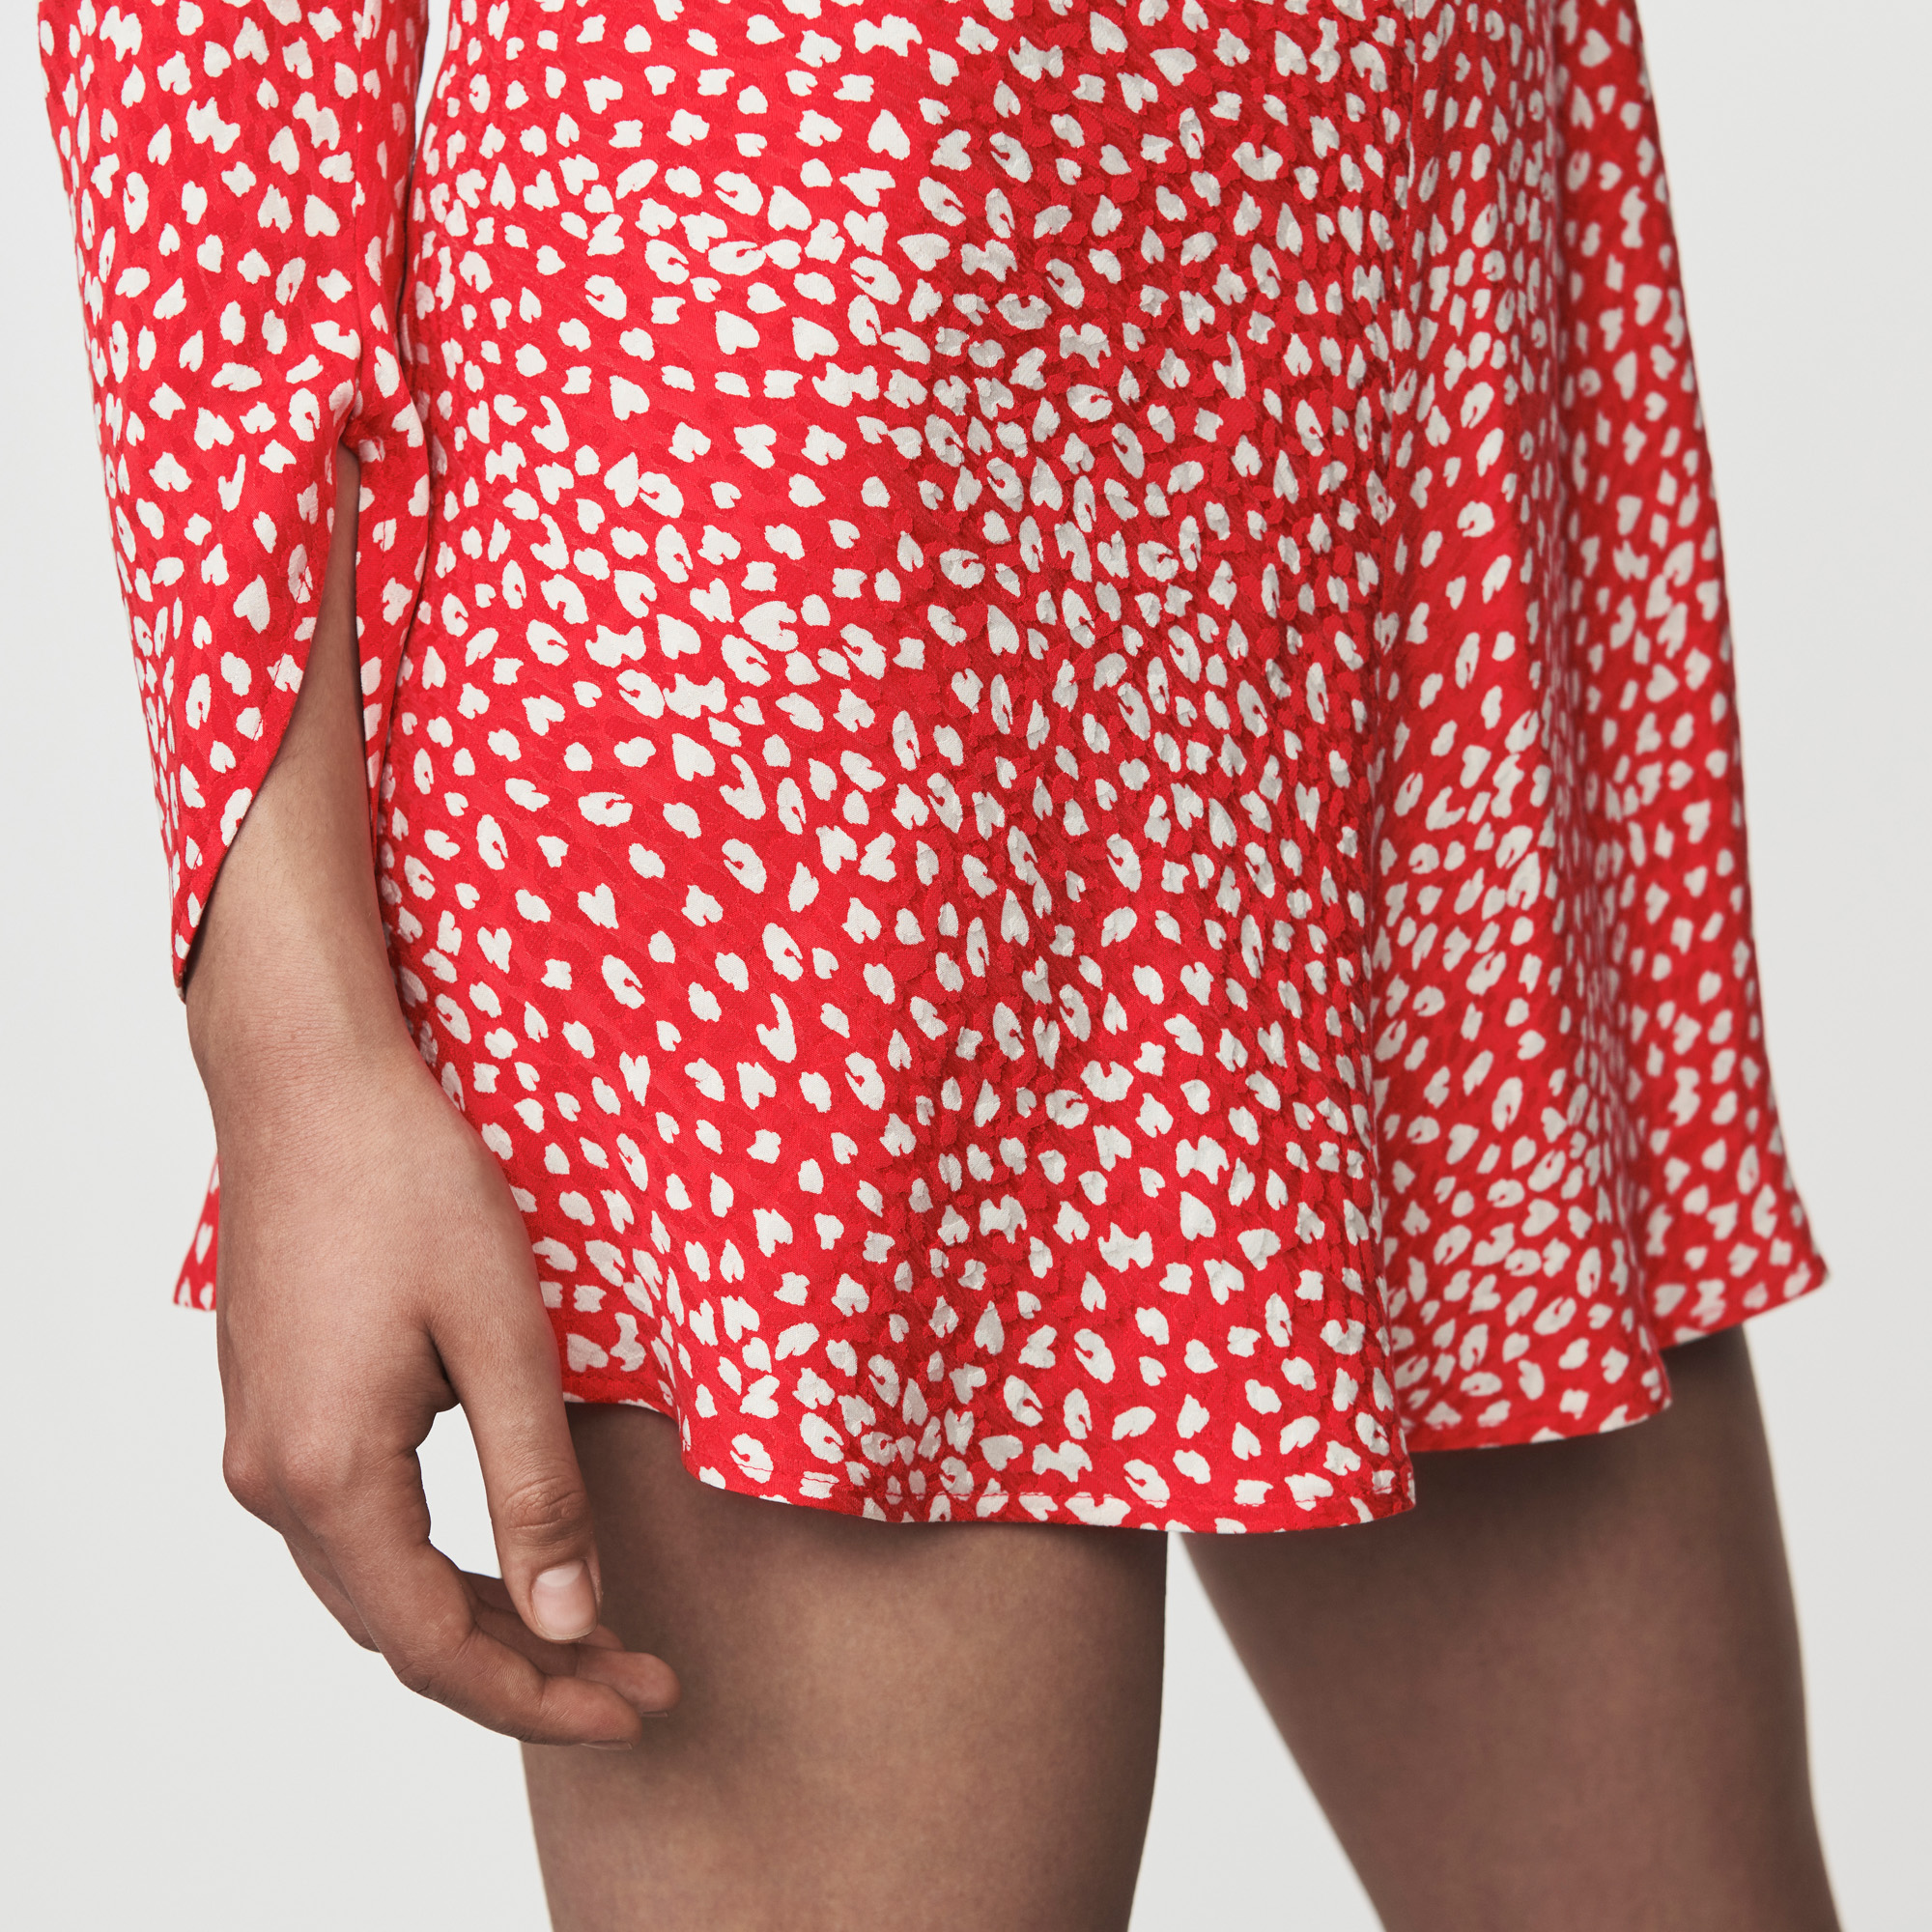 Jacquard printed gathered dress - Red